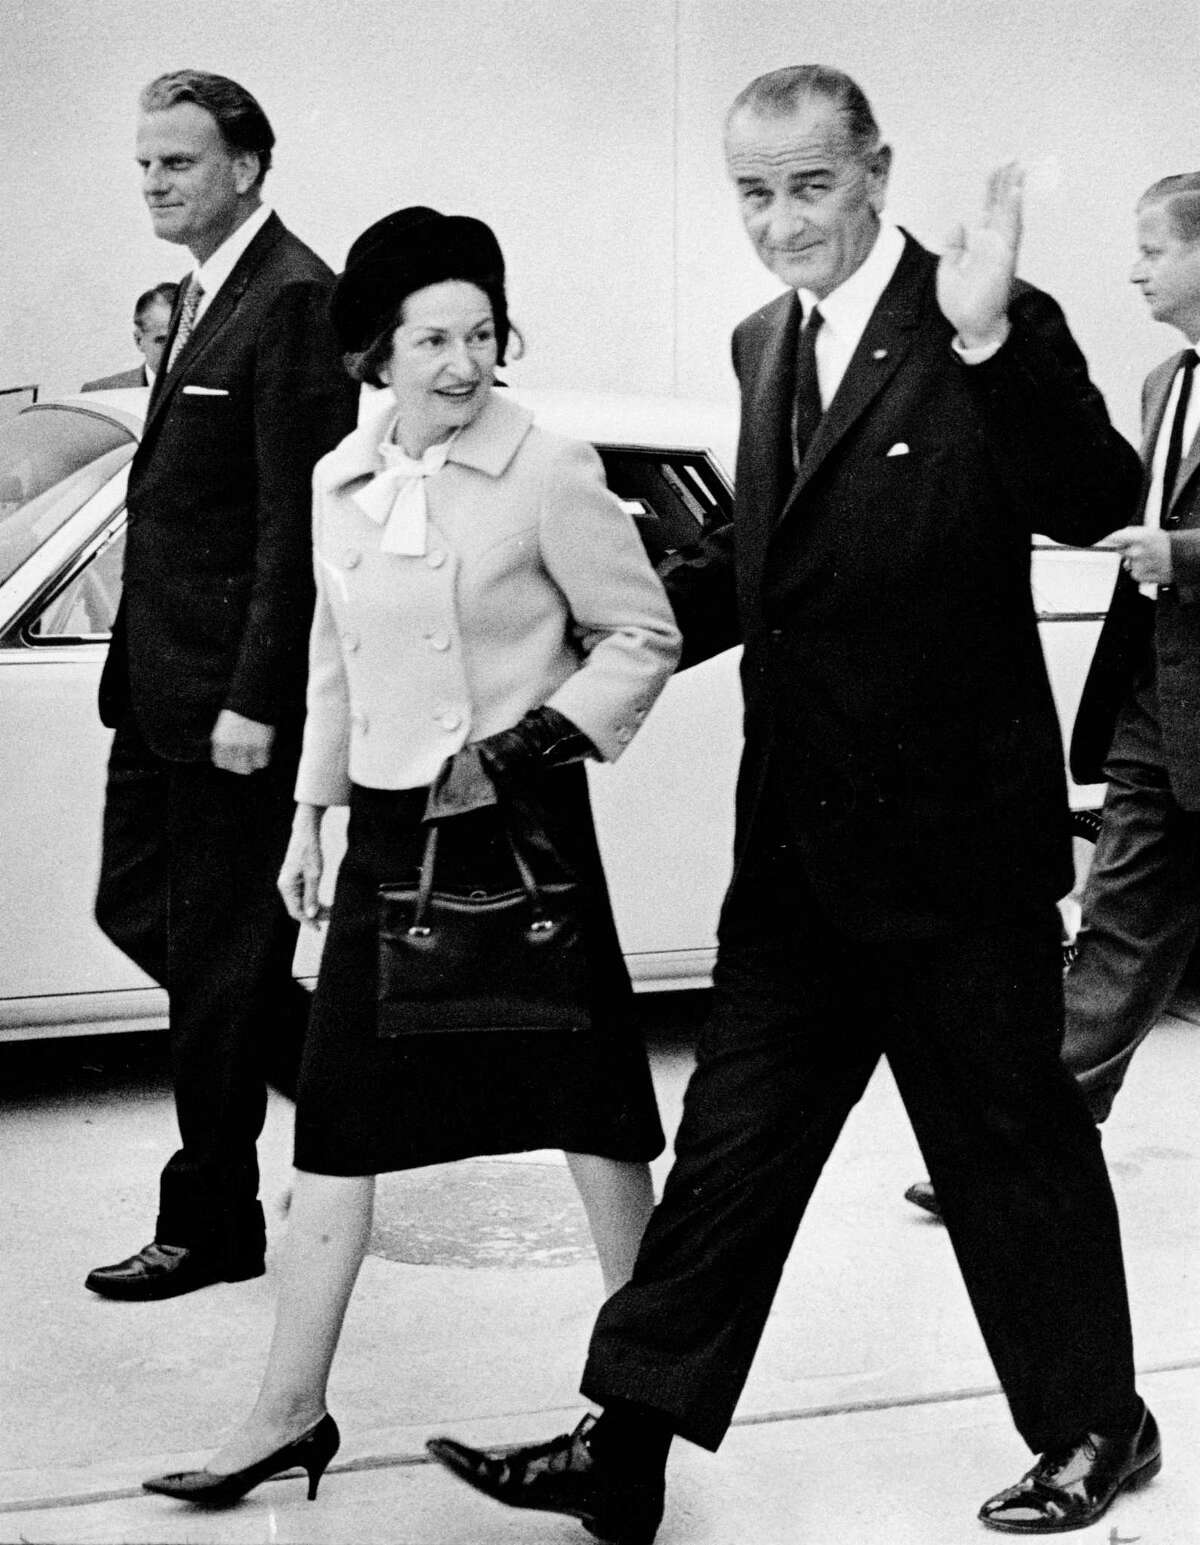 Lady Bird Johnson walks with President Lyndon Johnson and Rev. Billy Graham after an event in Houston in November 1965.